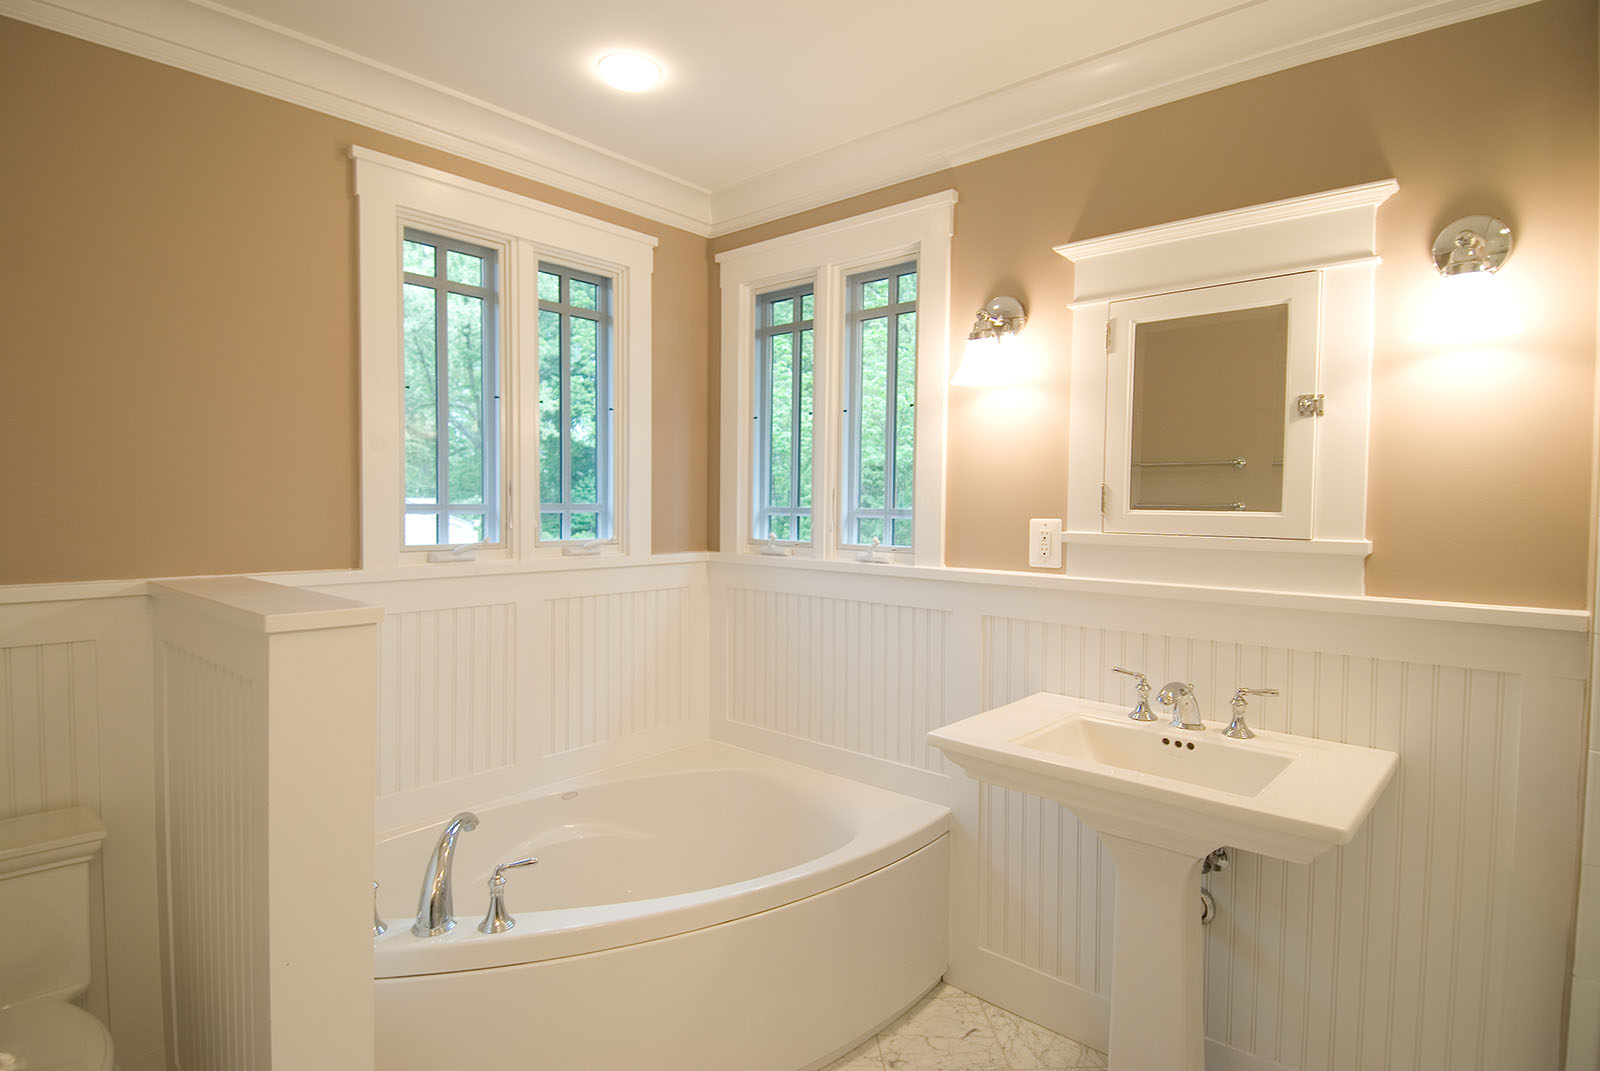 Bathroom remodeling old dominion building group for Remodeling bathroom ideas older homes